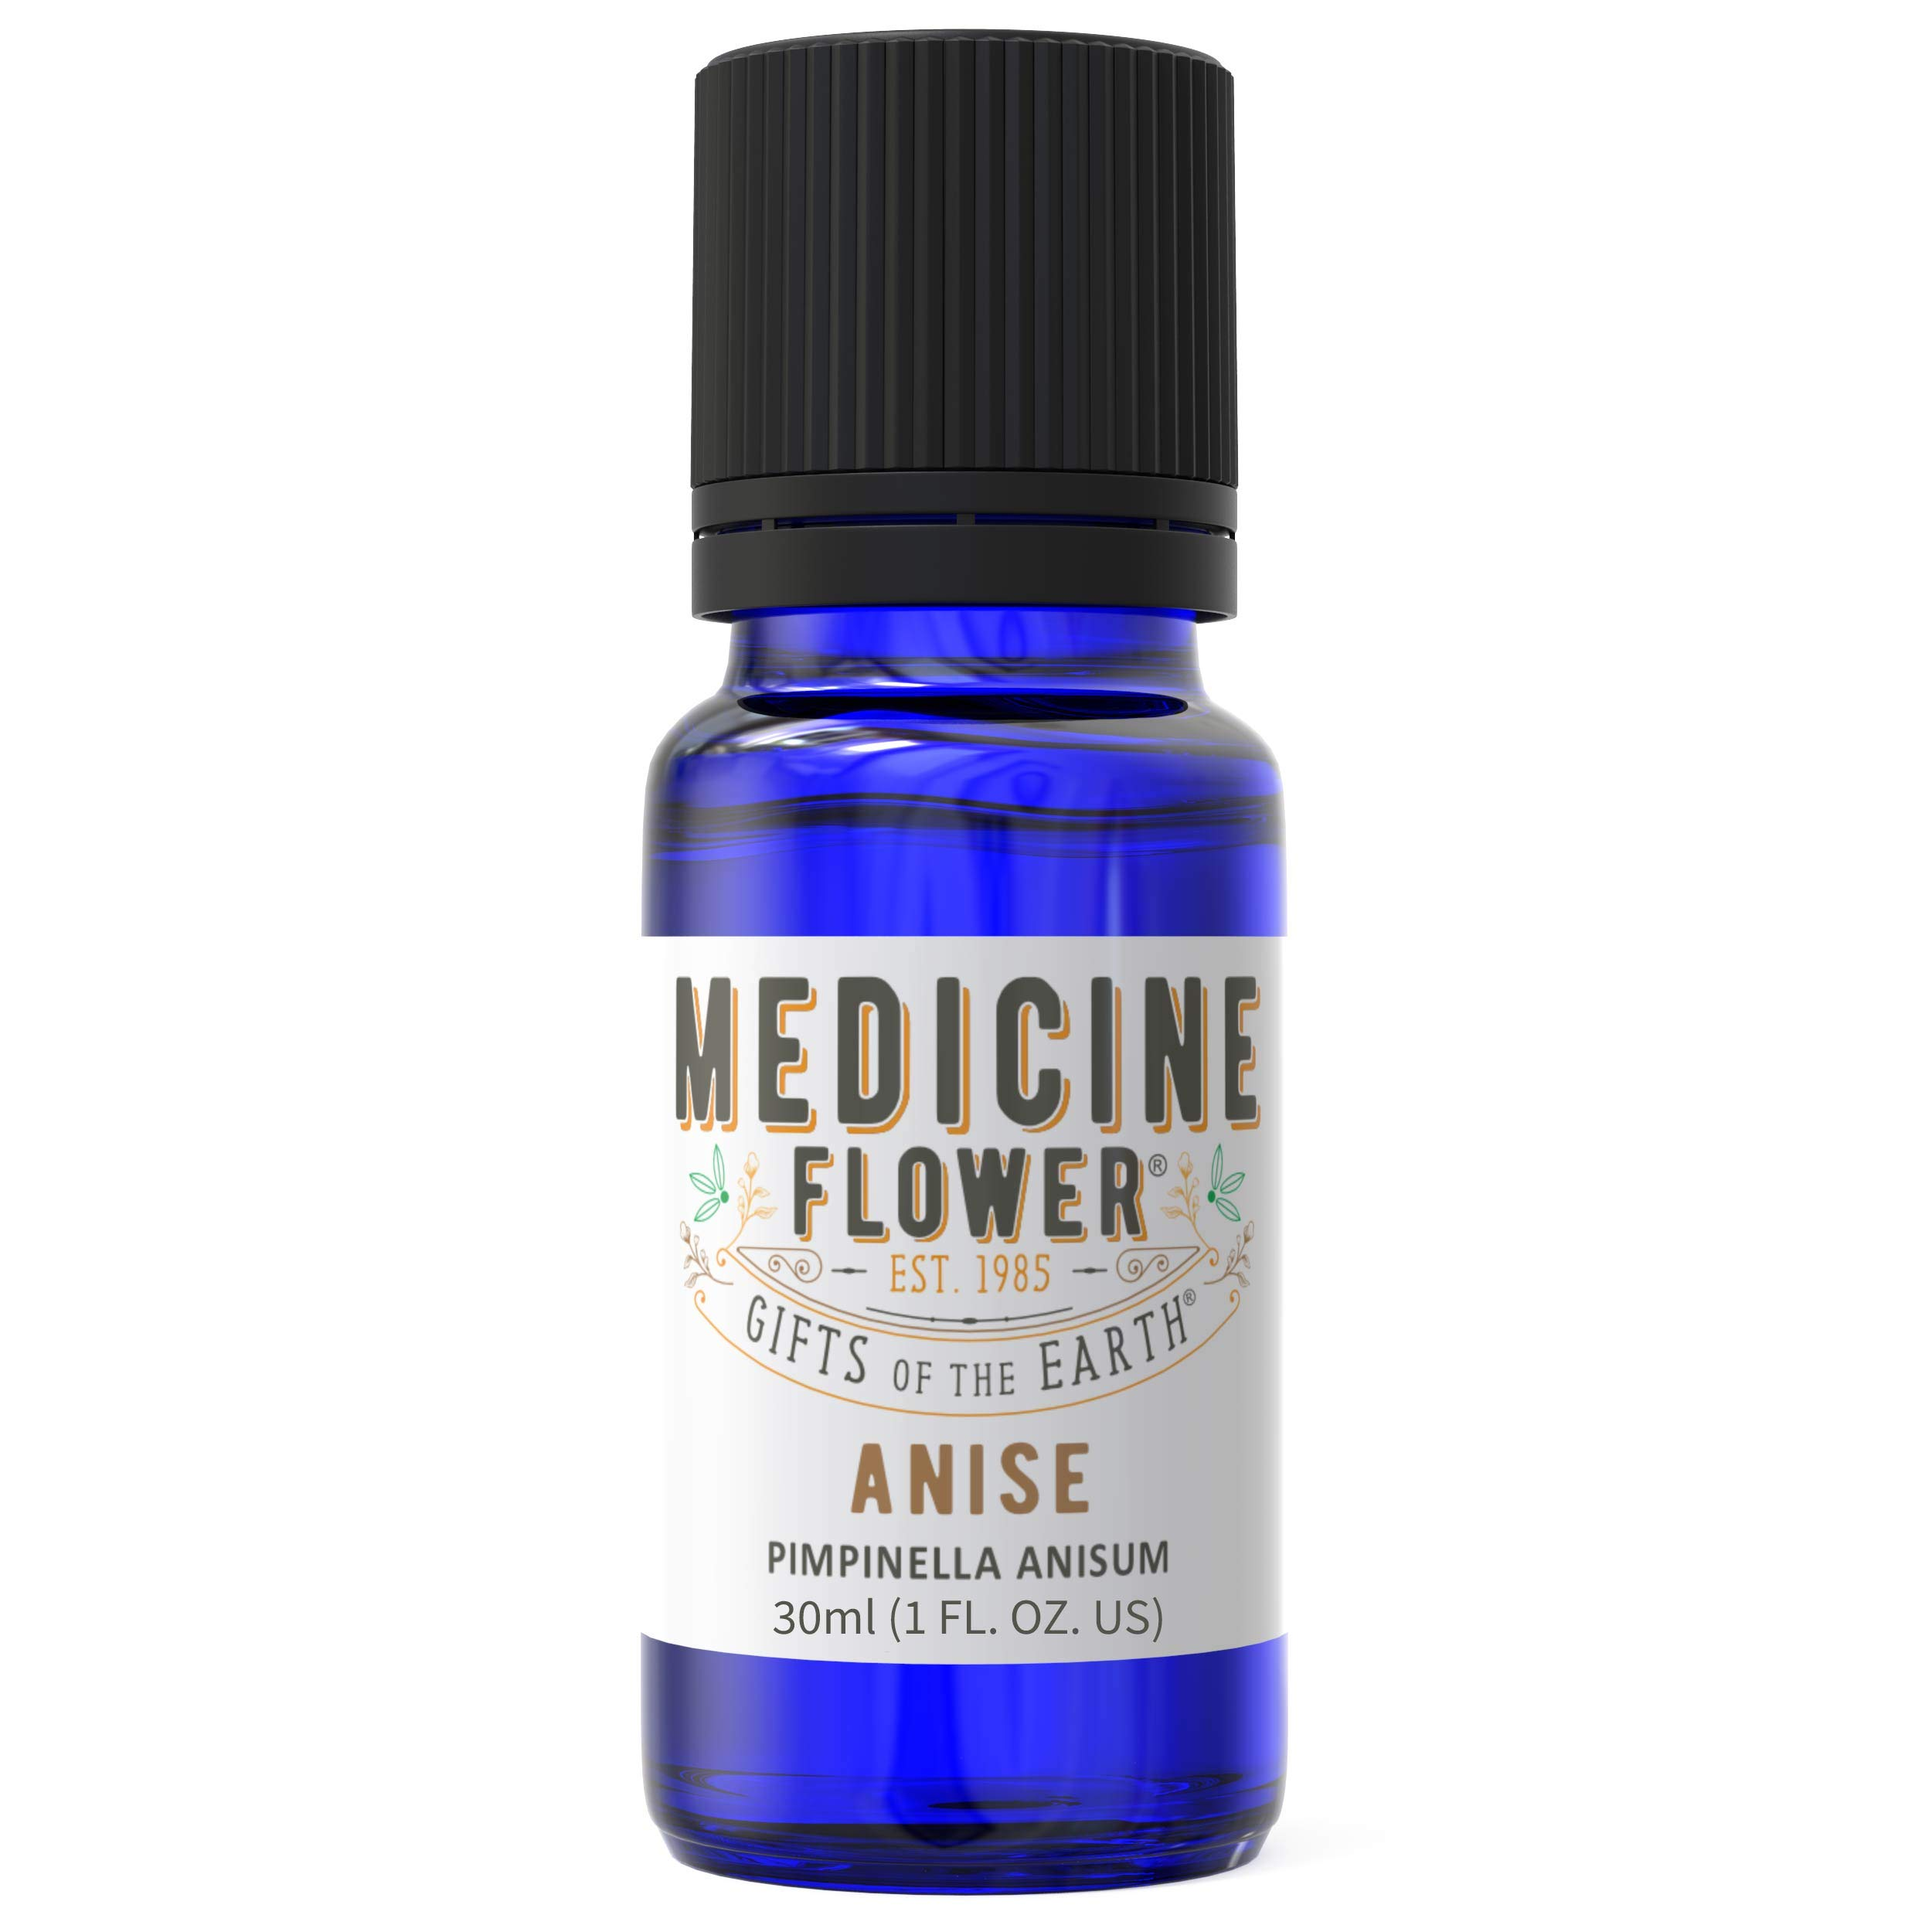 Medicine Flower Pure Anise Seed Oil, Premium Quality of Anise Seed Essential Oil (30ml, 1oz) by Medicine Flower